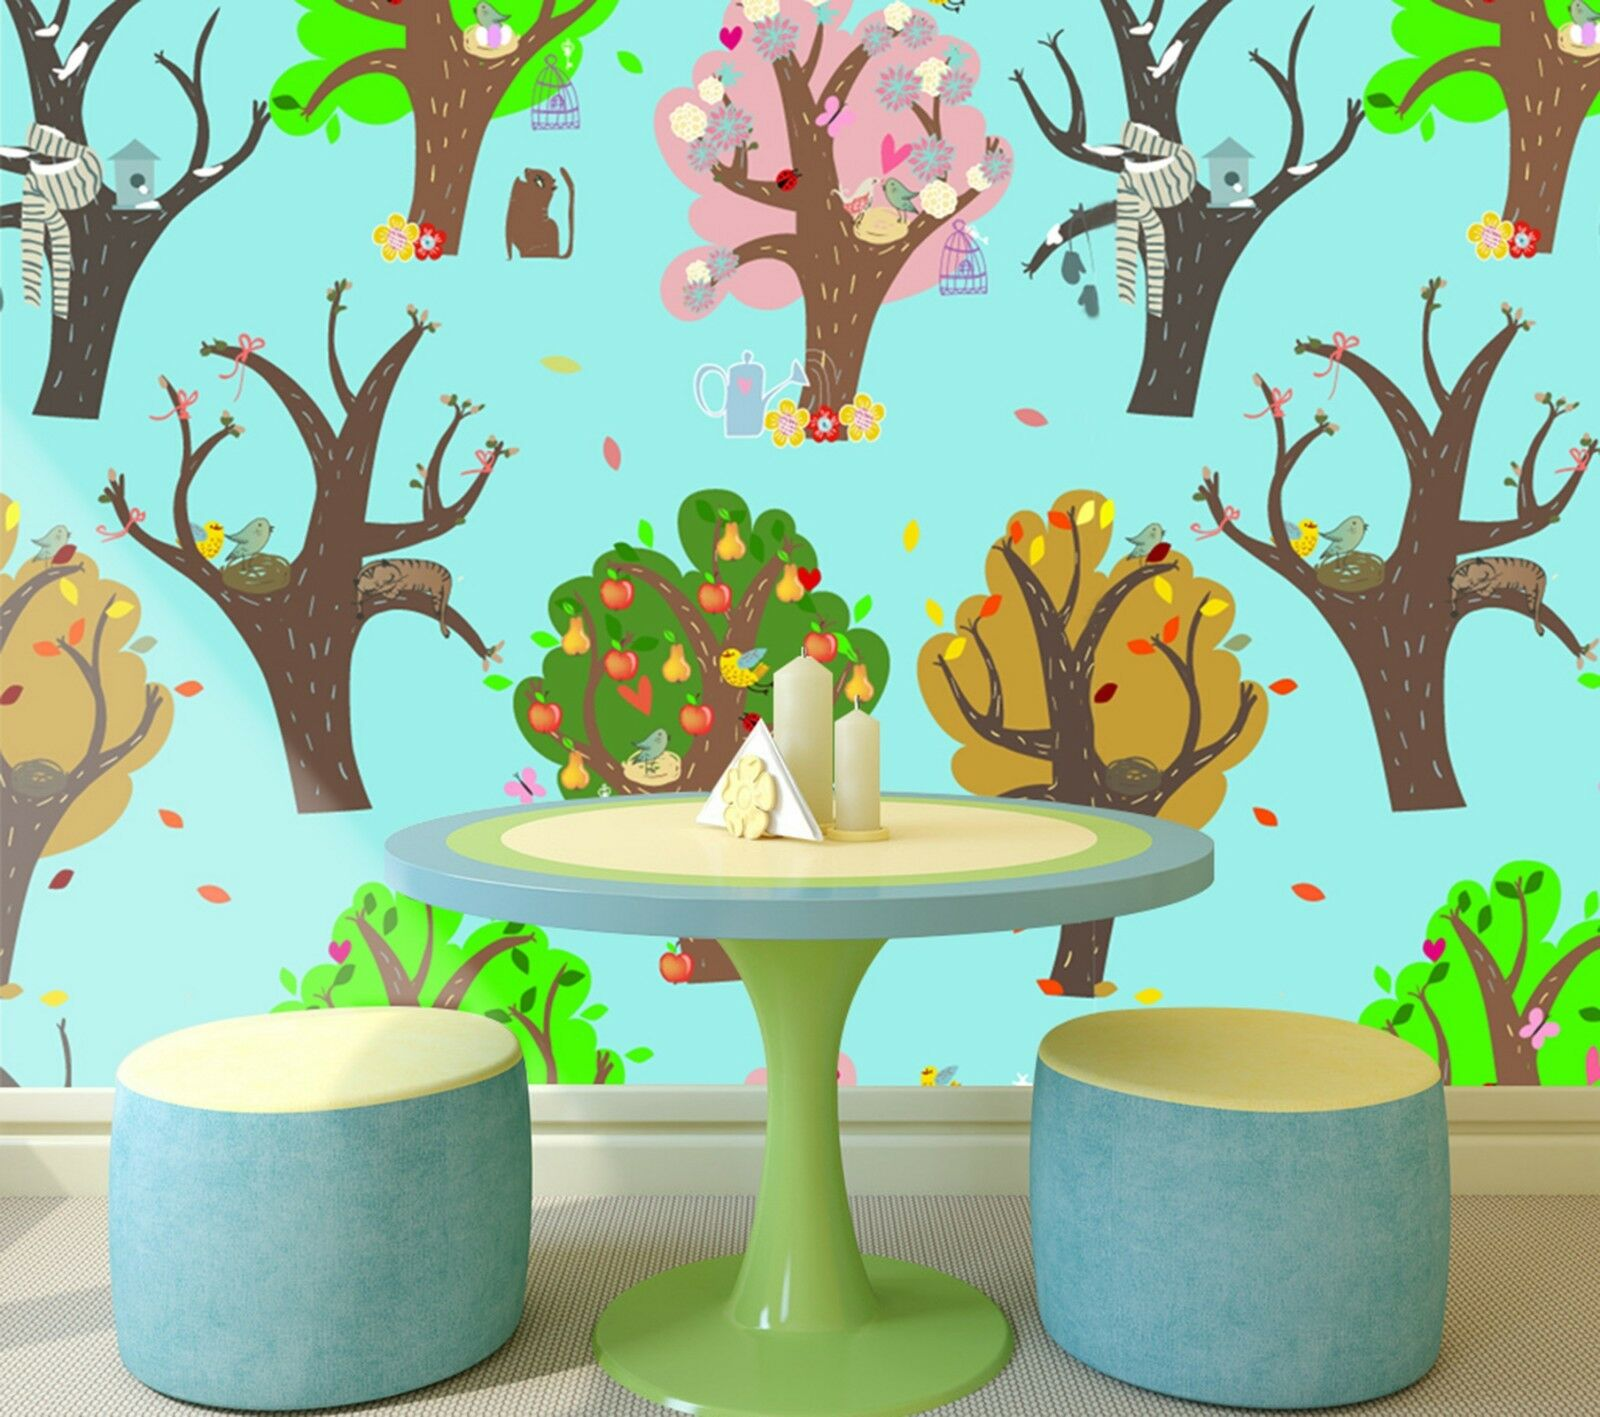 3D Fruit trees trees trees Graffiti Wall Paper Print Decal Wall Deco Indoor wall Mural e5866c